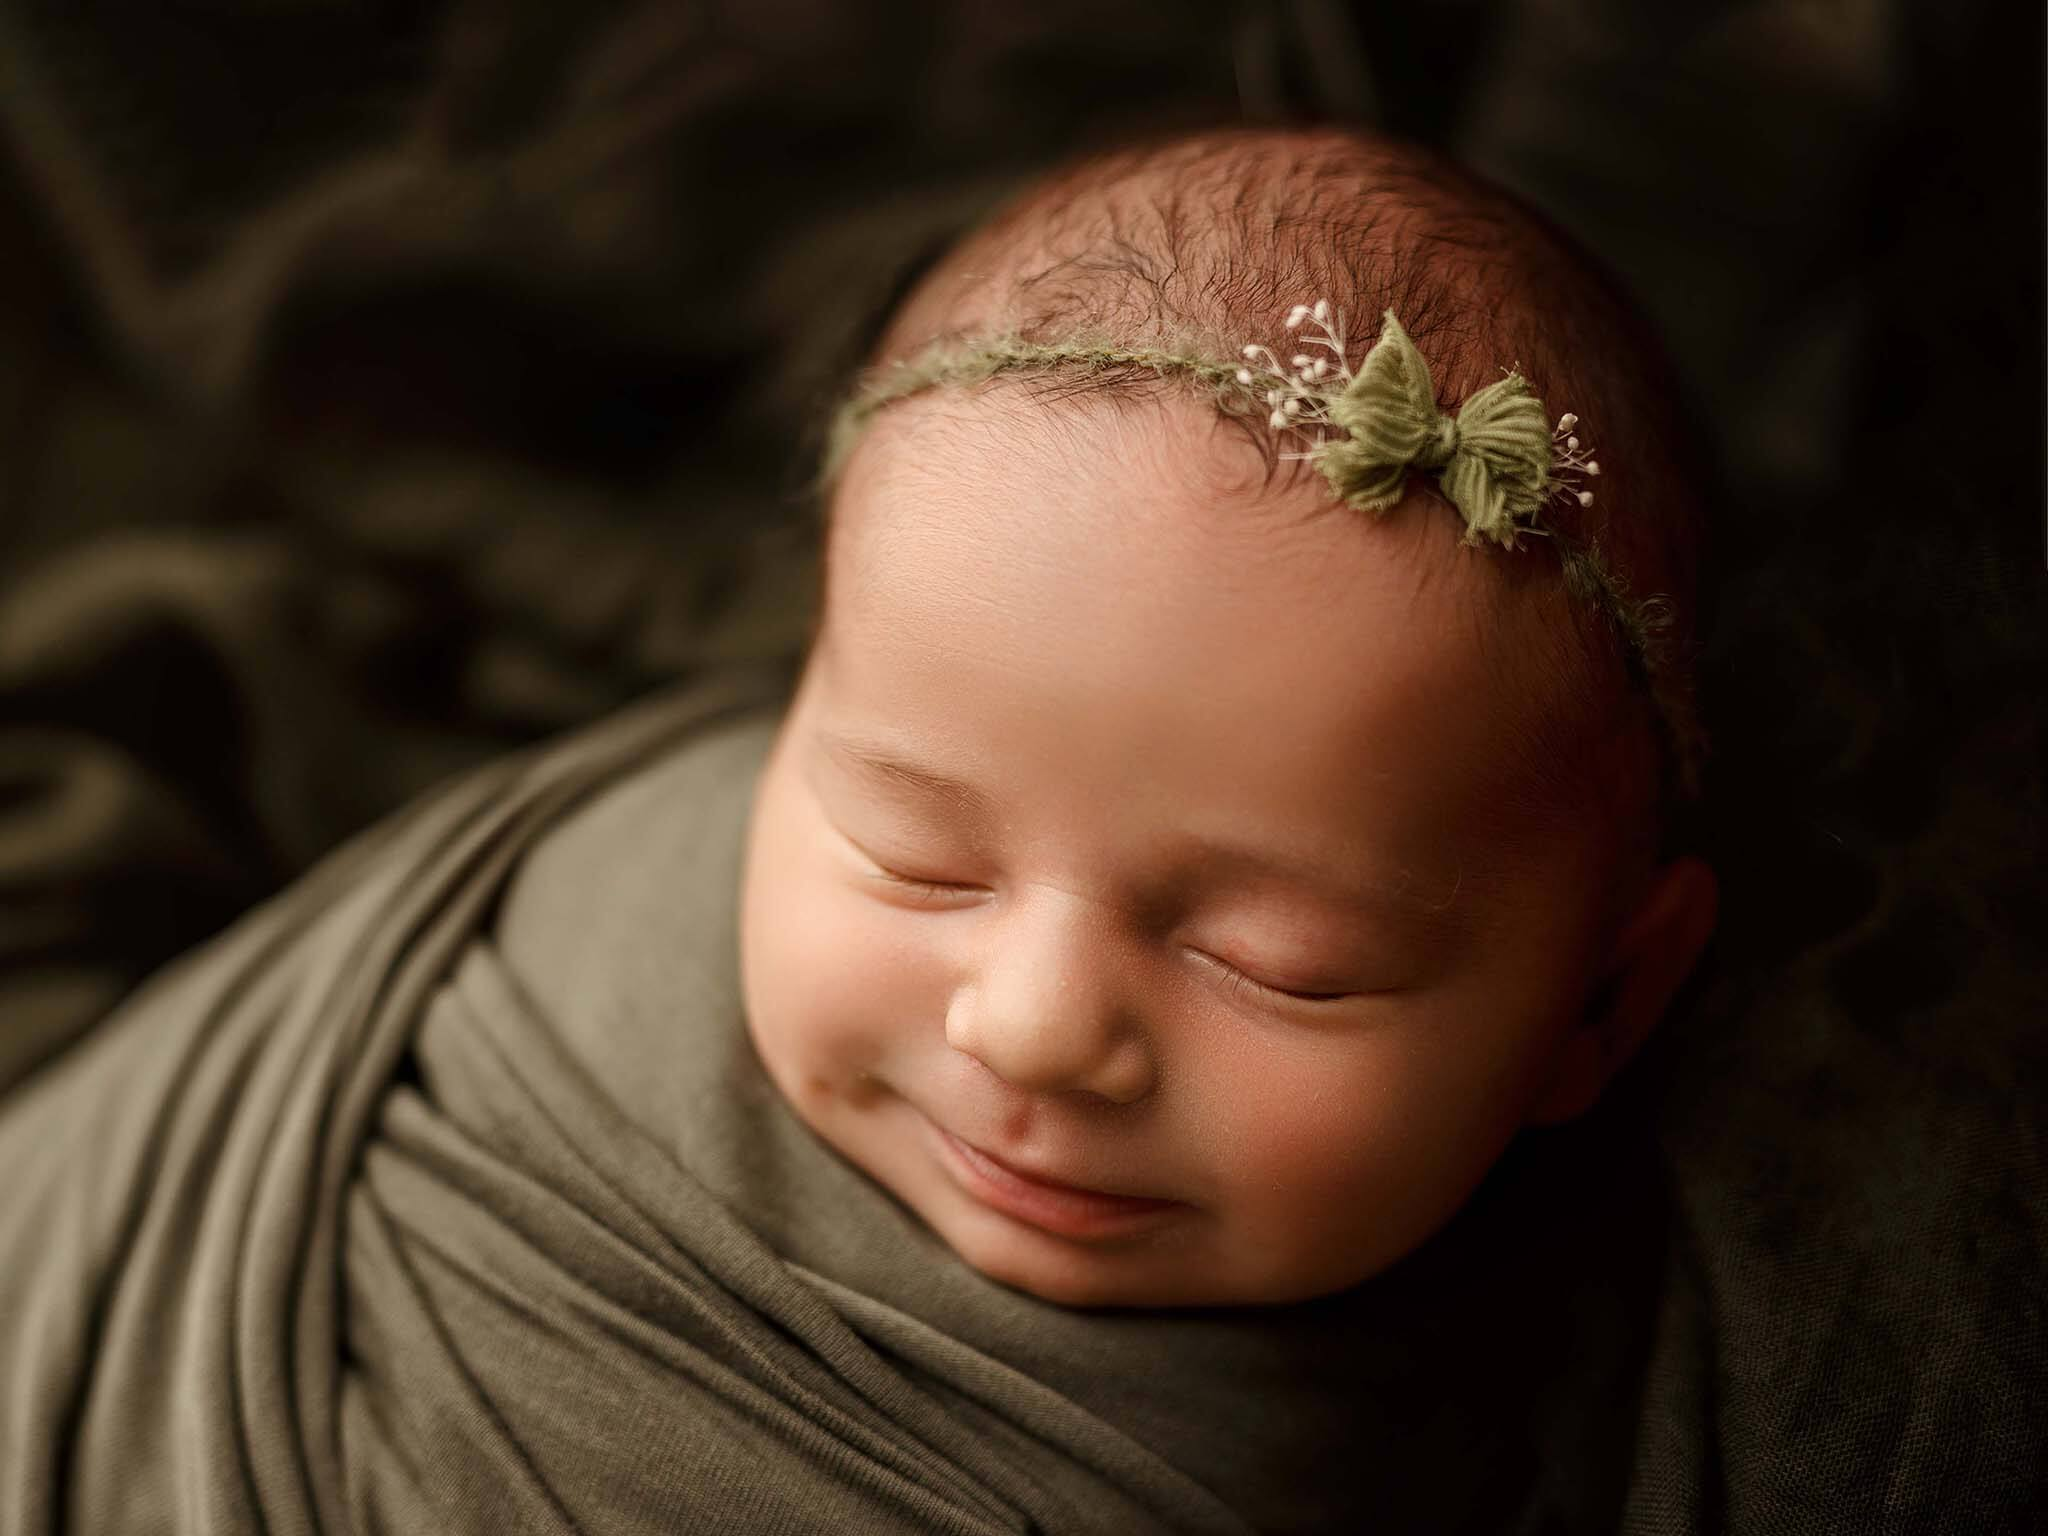 newborn phNewborn baby smiling dressed on green photographed by Lifetime Stories Photography Victoria Burcusel at her studio in Brisbane